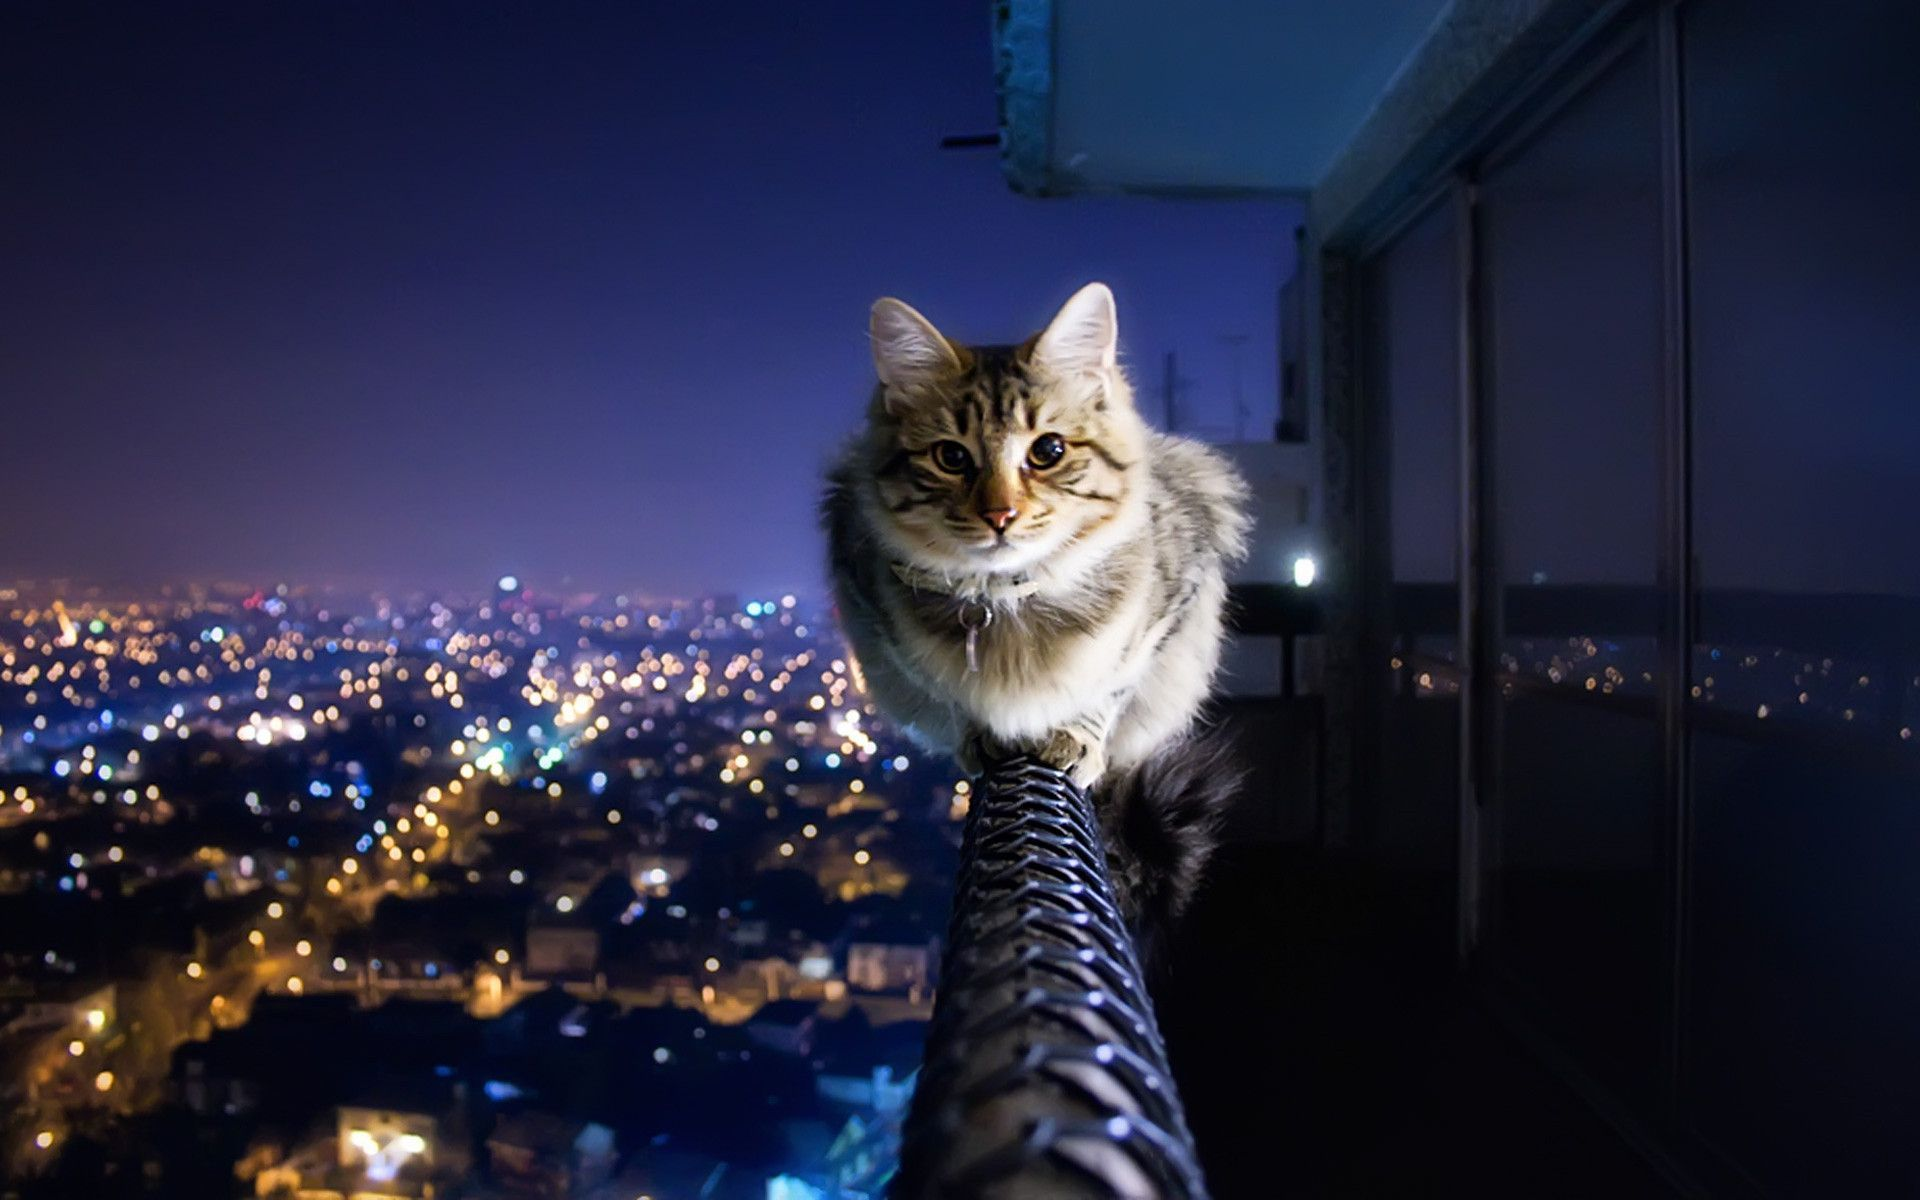 Cats Wallpapers  Android Apps on Google Play 1920×1200 Cats Images Wallpapers (45 Wallpapers) | Adorable Wallpapers